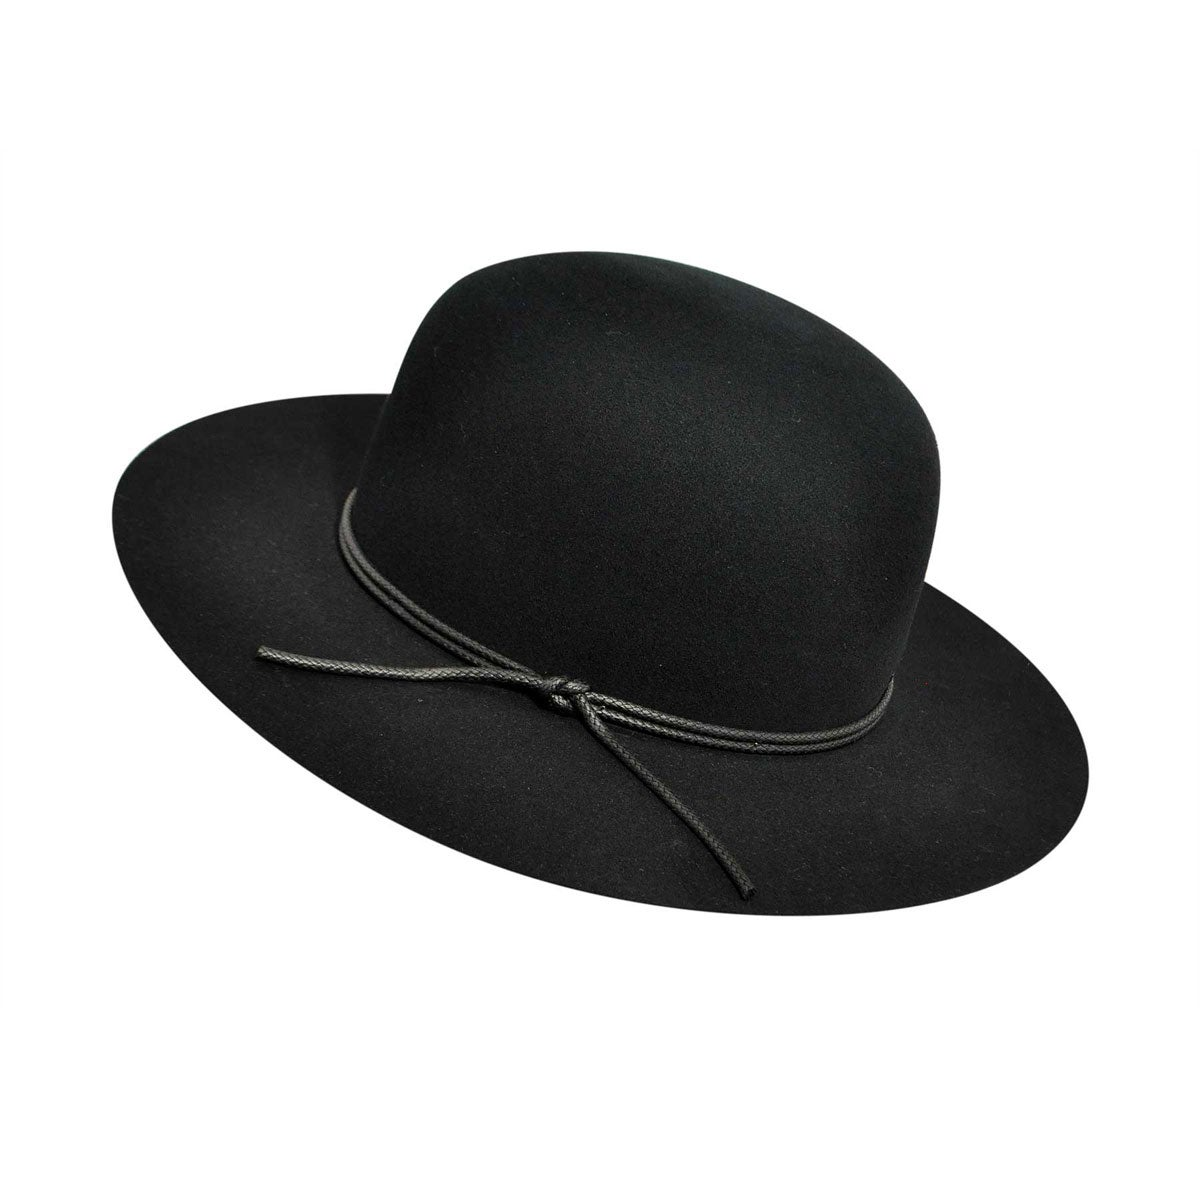 1940s Style Mens Hats Rollin Fedora $135.00 AT vintagedancer.com